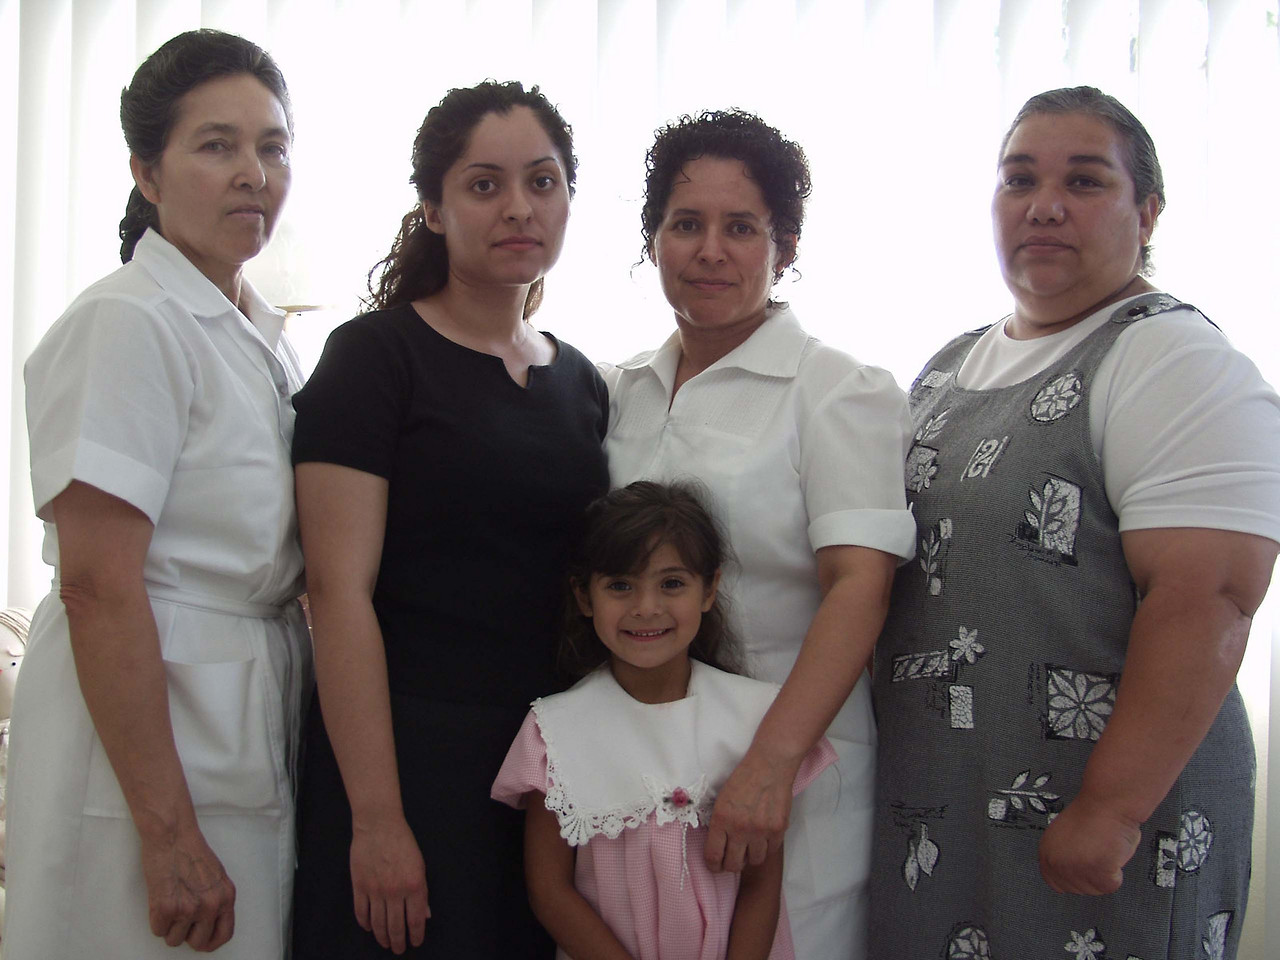 <h1>After My Grandmother's Funeral, June 2002</h1> <h3> Three of these women kept house for my grandmother, Rose Kadesky, on alternate days (and took care of her; she was 100 years old when she died.)  The young woman in black is a nurse and the daughter of the woman on her left.  She happened to have been assigned to my grandmother's ward the last time Rose was in the hospital. <h3>